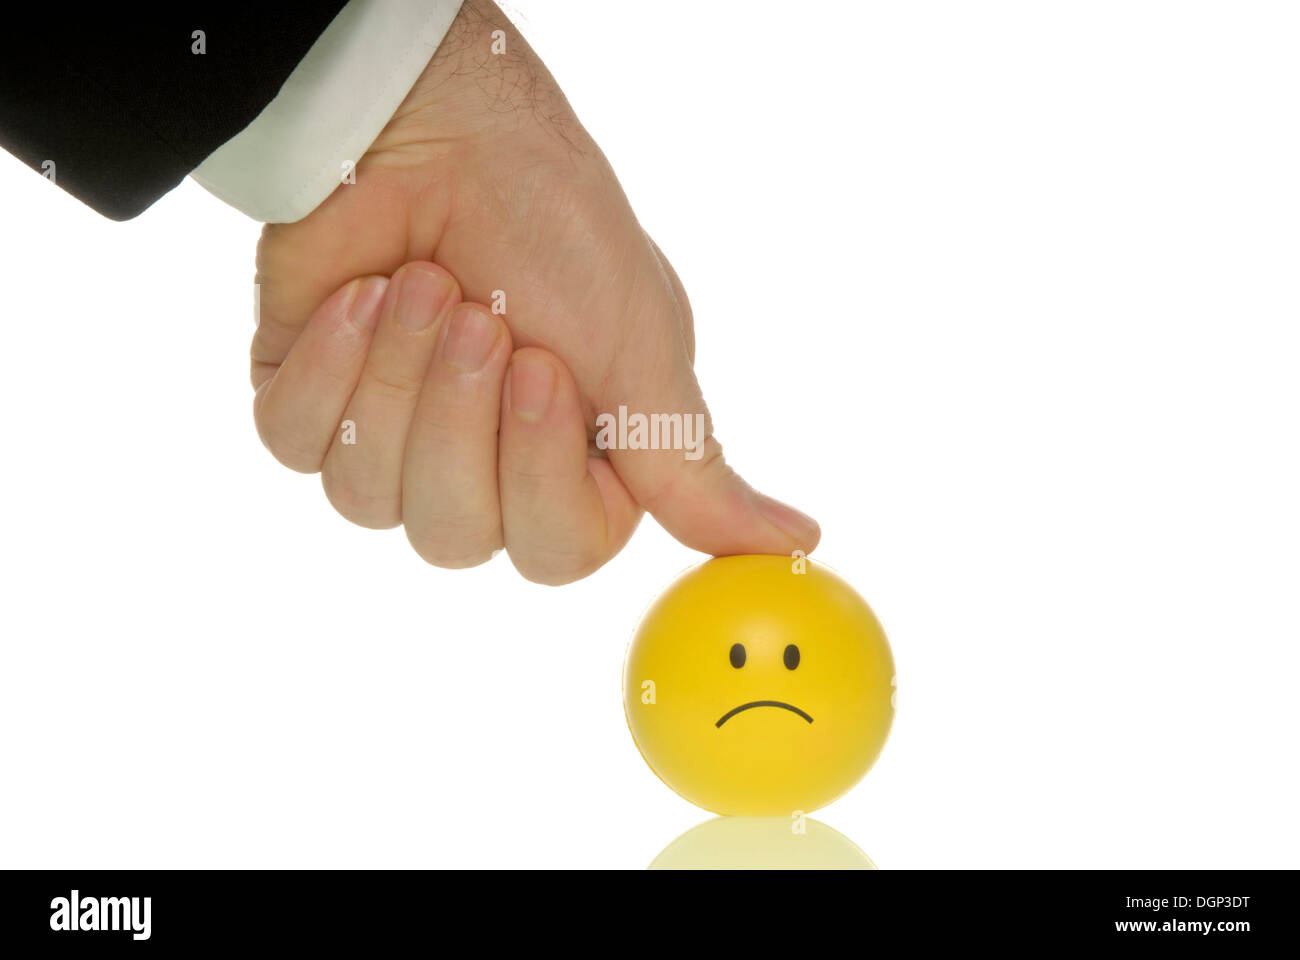 Businessman pressing his thumb down on a smiley, symbolic image for pressure to perform - Stock Image